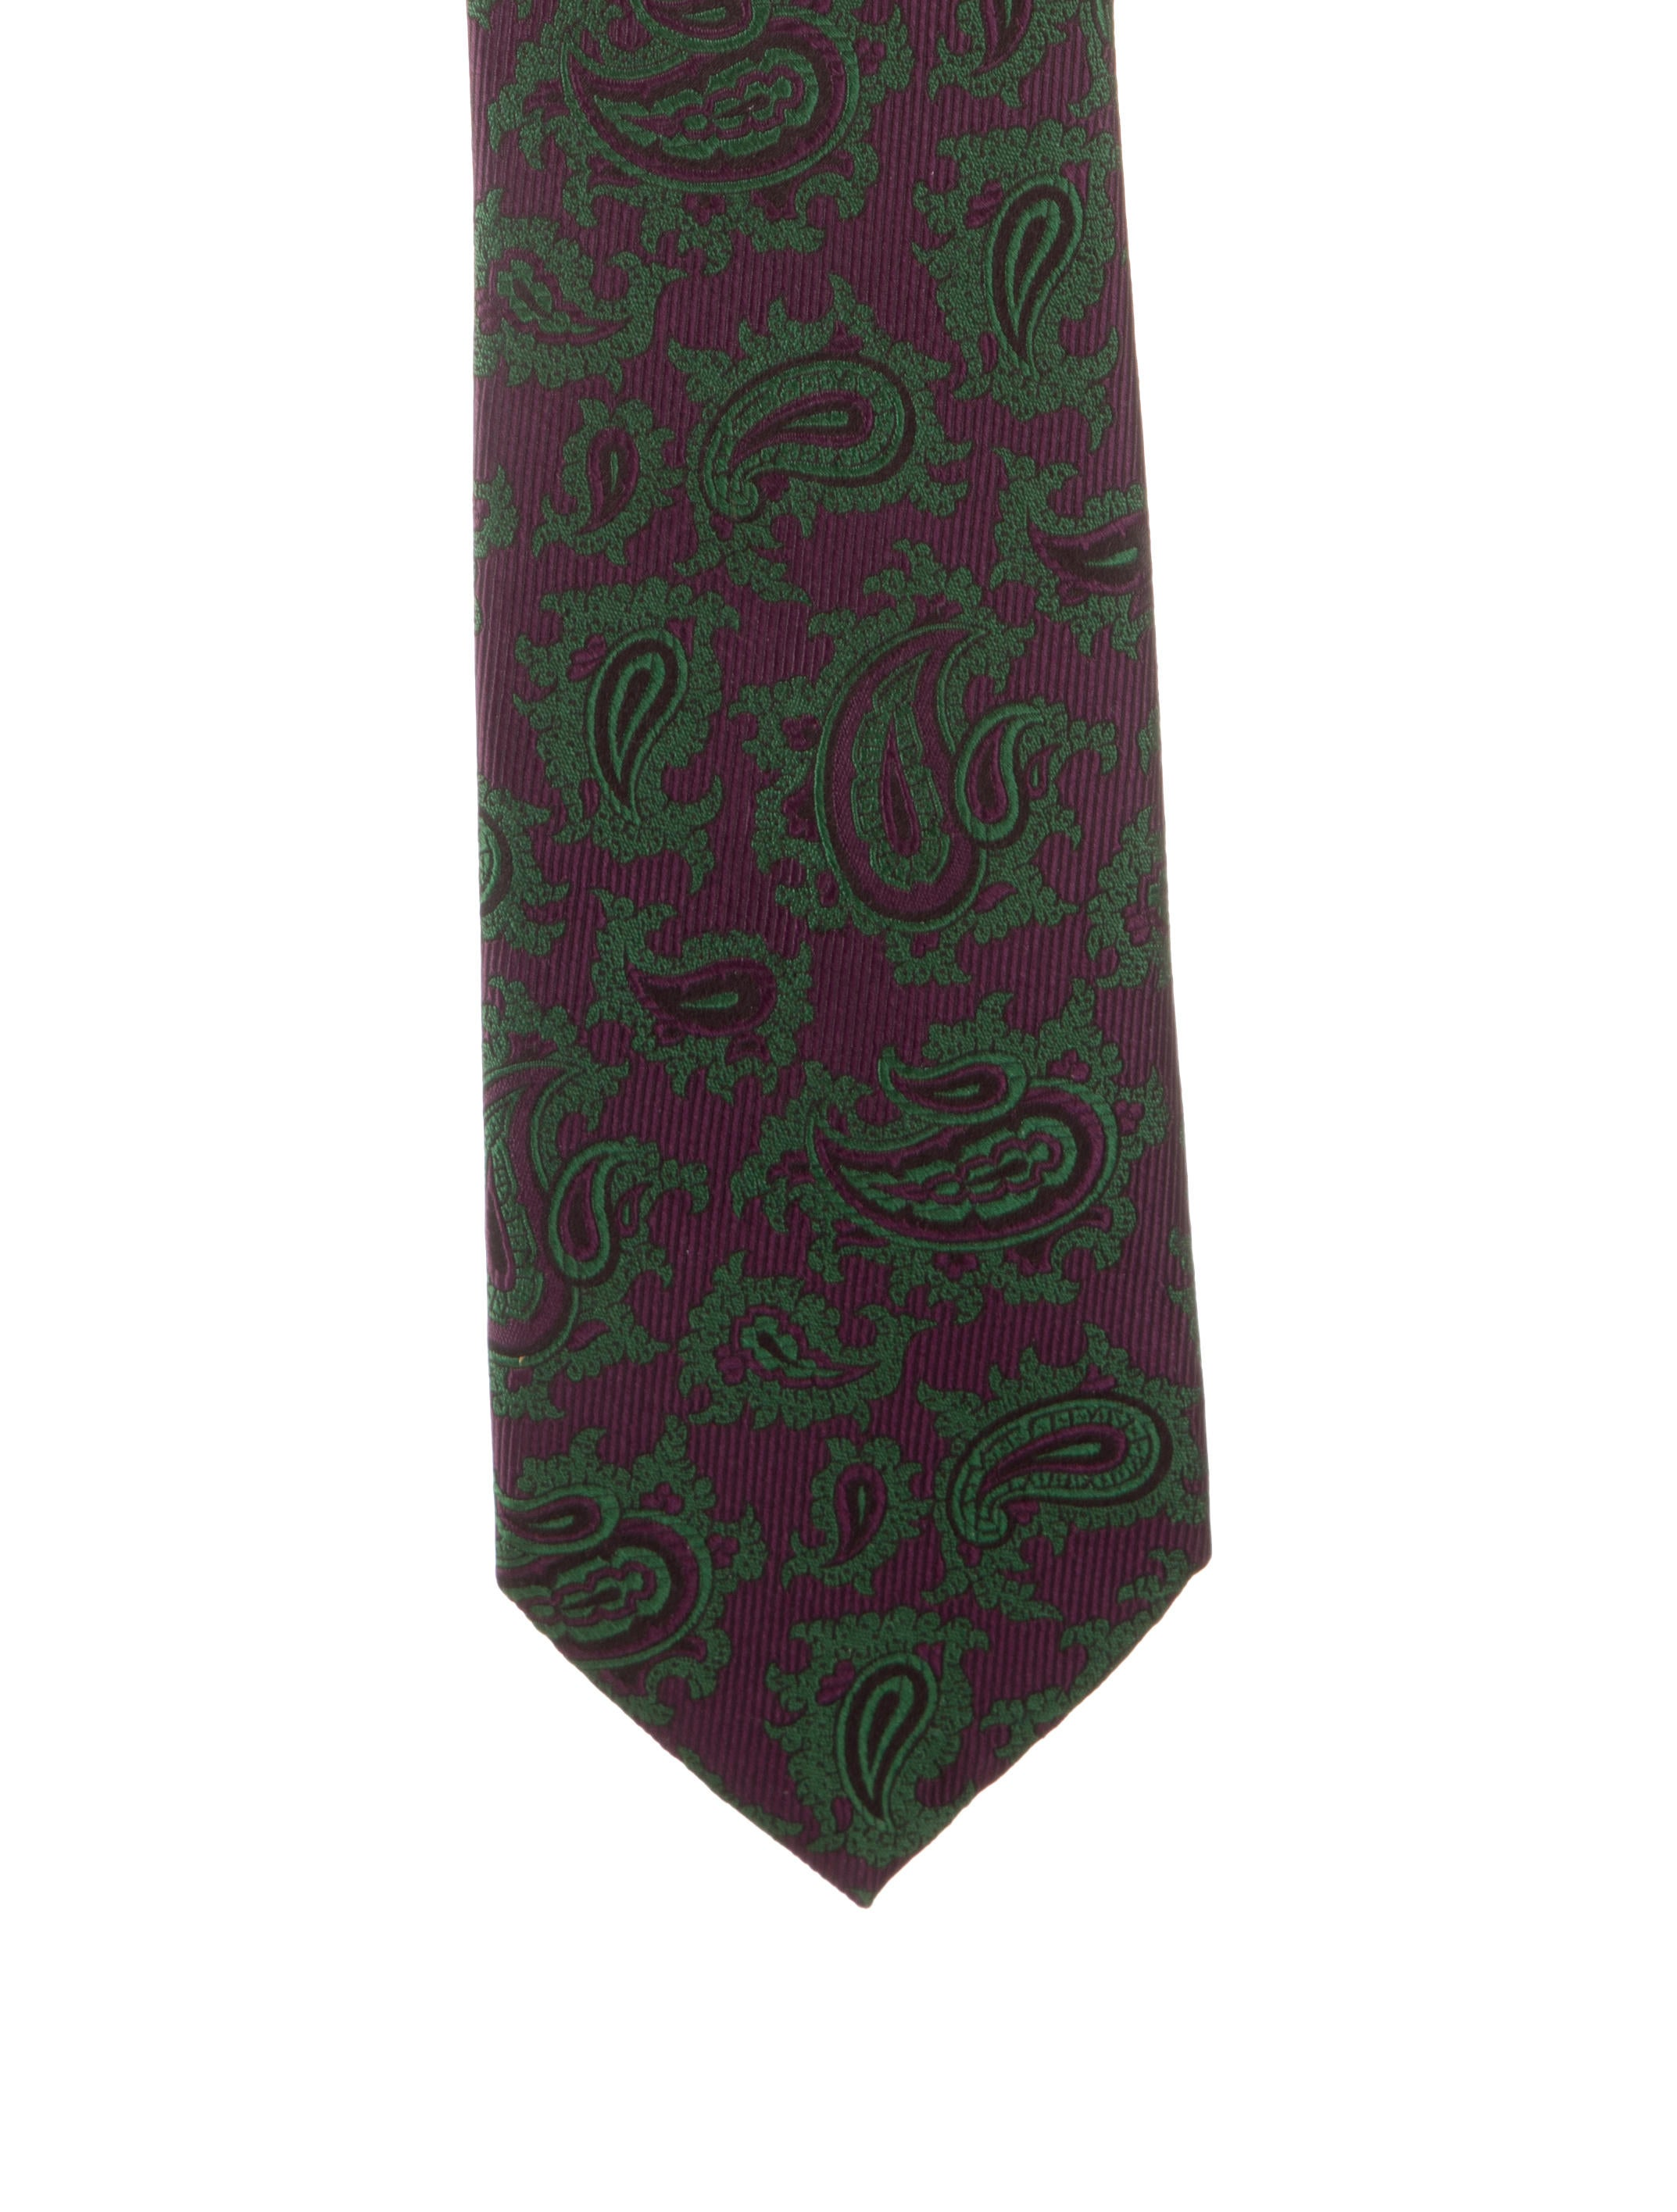 9fb9d12f88a6 Brioni Silk Paisley Tie - Suiting Accessories - BRO27308 | The RealReal